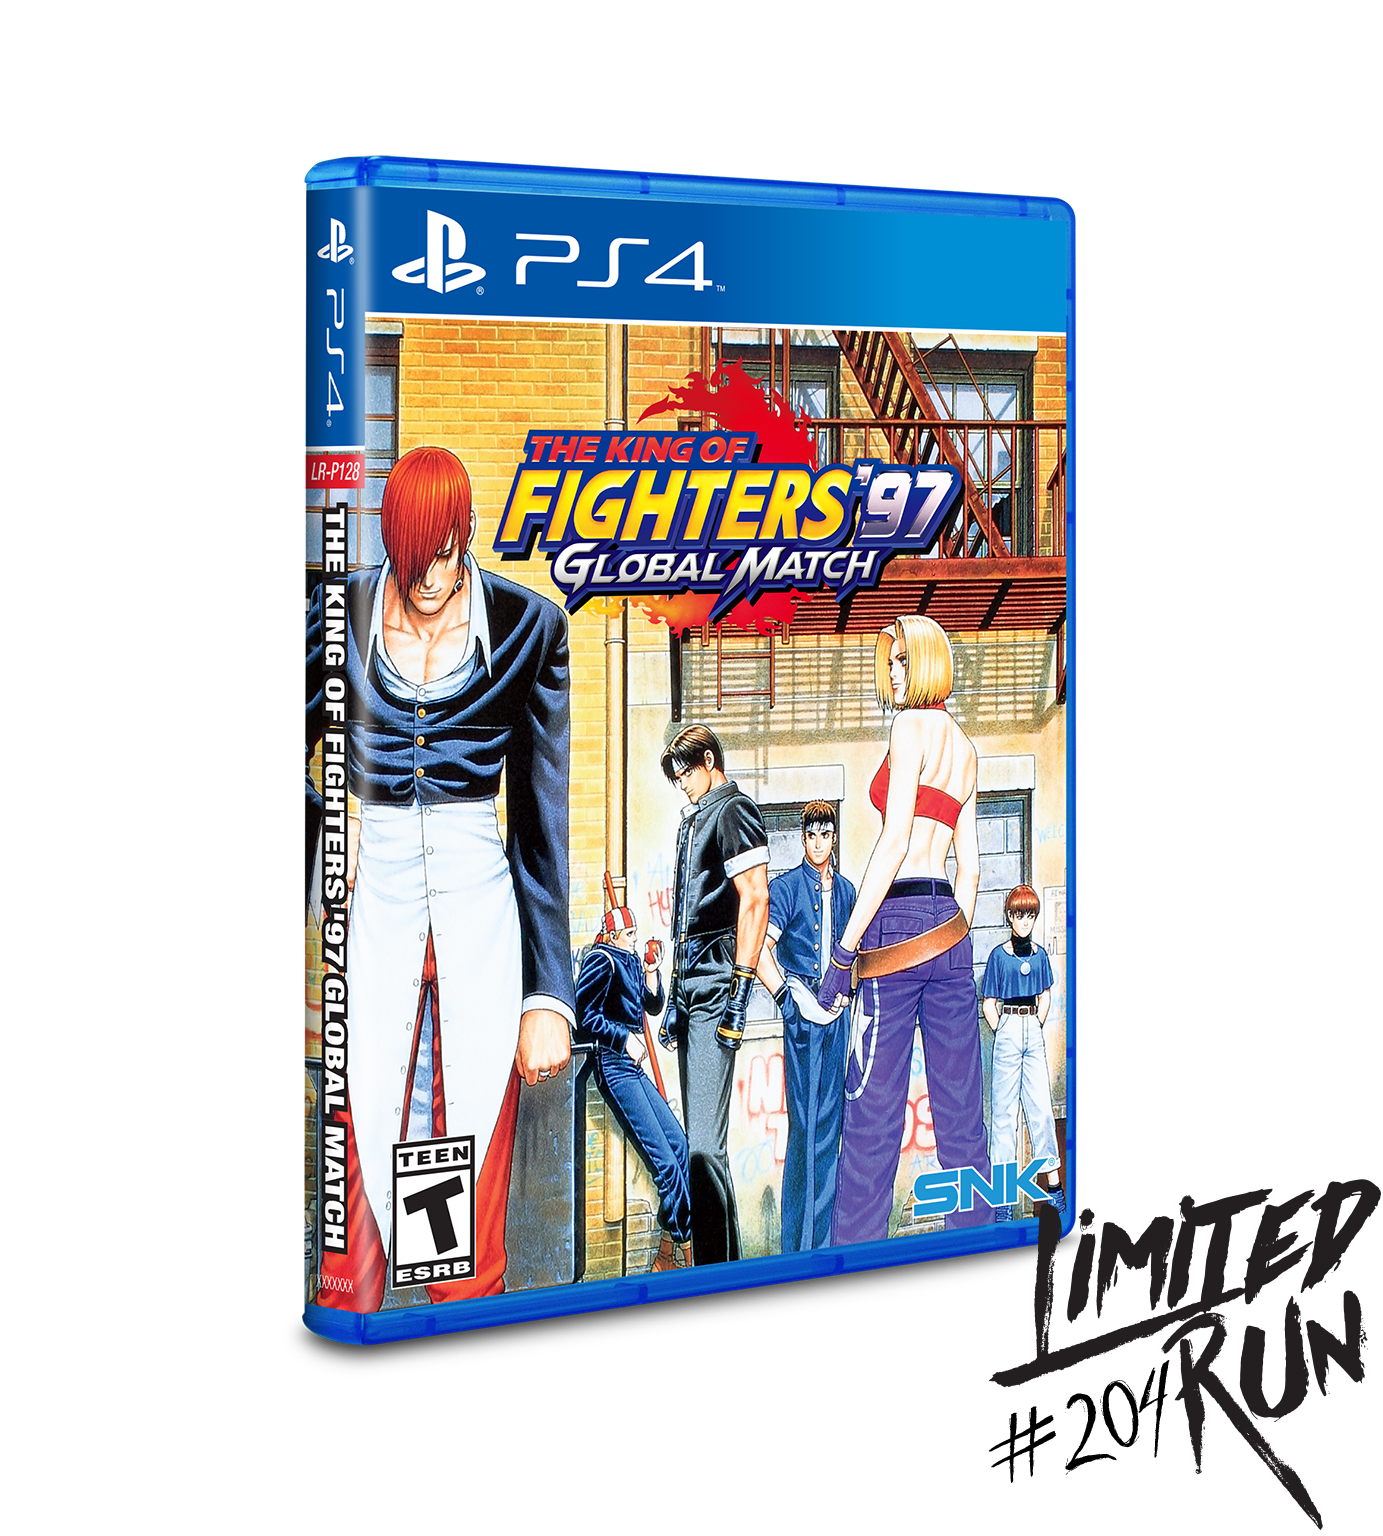 Limited Run 204 King Of Fighters 97 Global Match Ps4 Limited